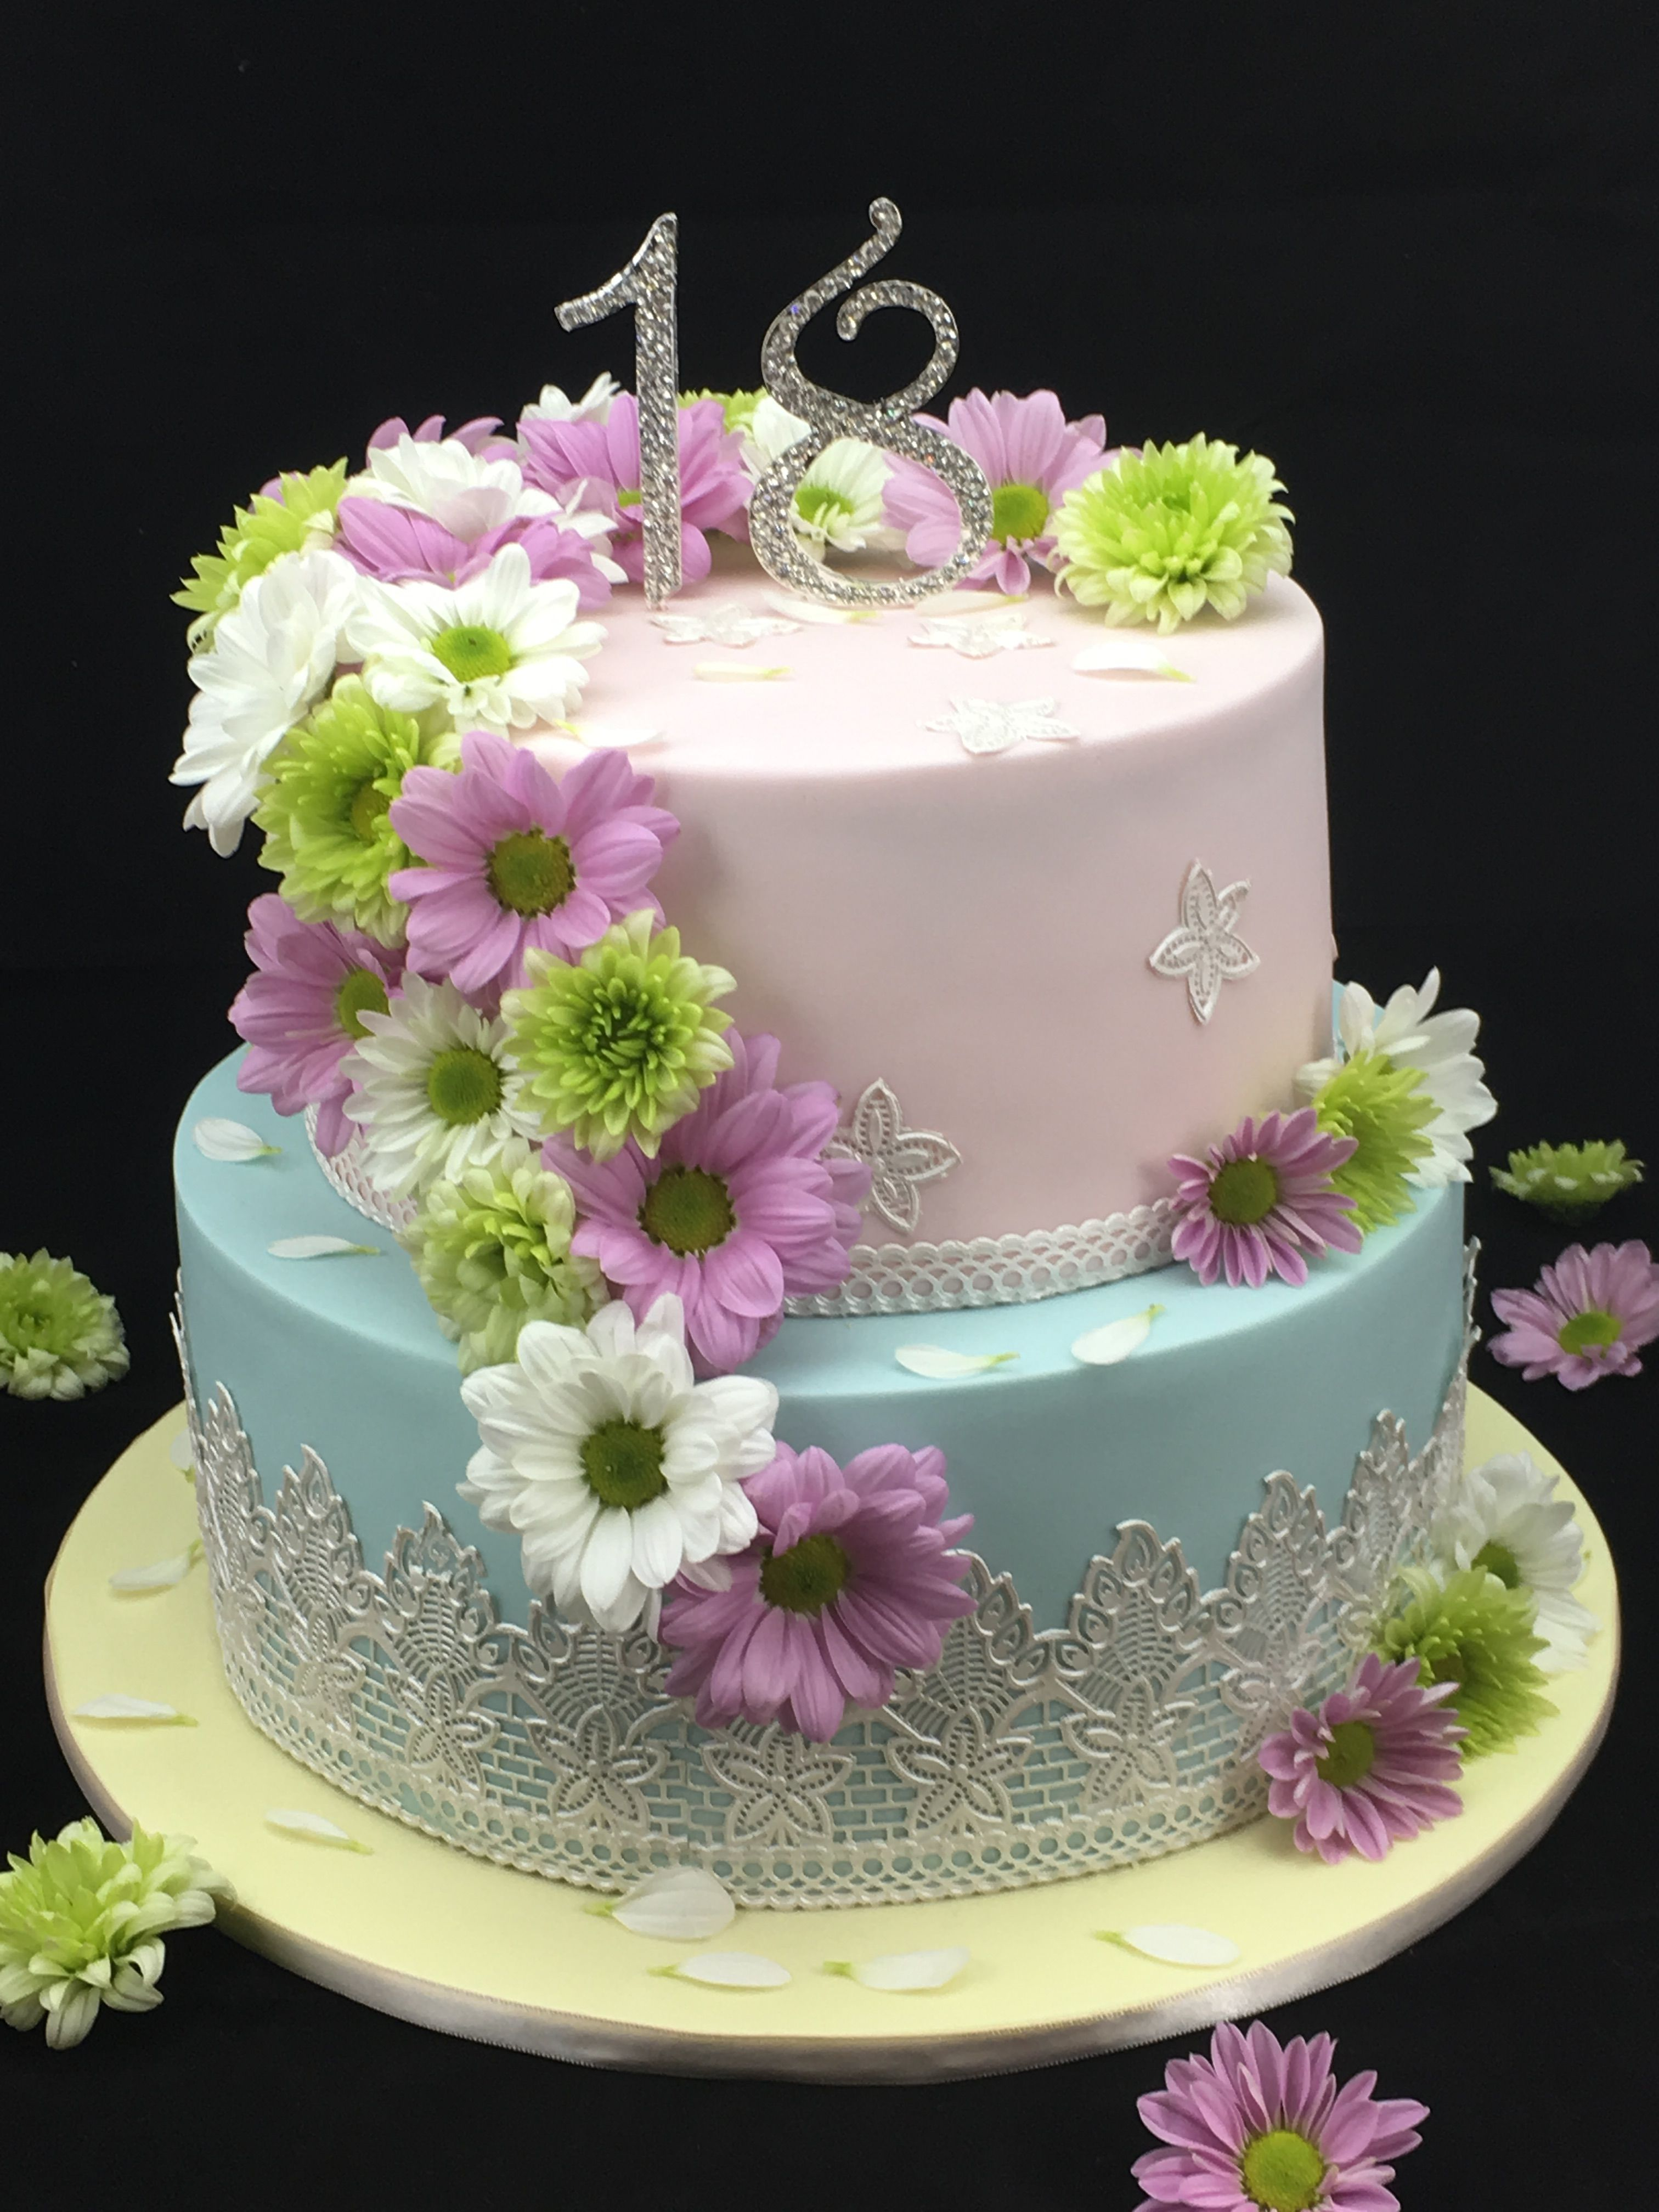 Edible Cake Decorations For 18th Birthday : Two tier pale pink and blue 18th birthday cake with edible ...